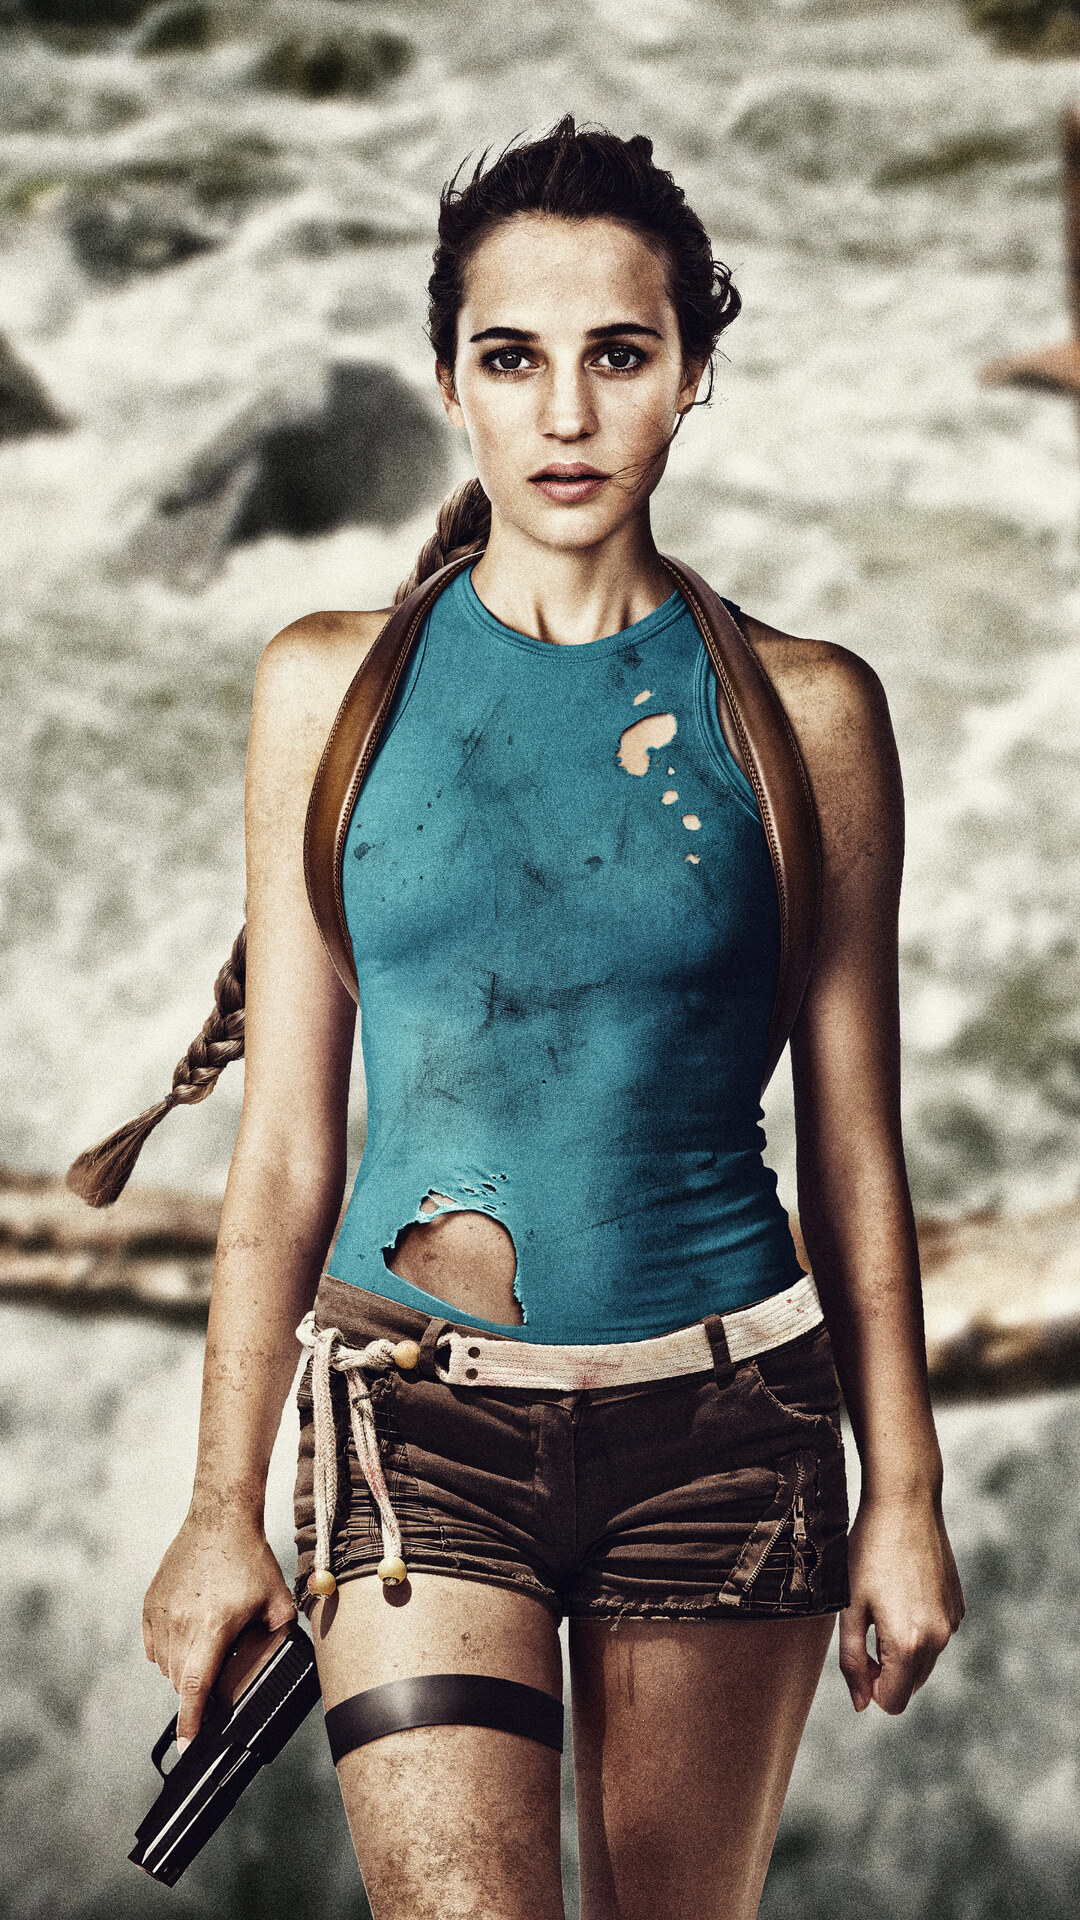 tomb-raider-key-art-8k-pa.jpg